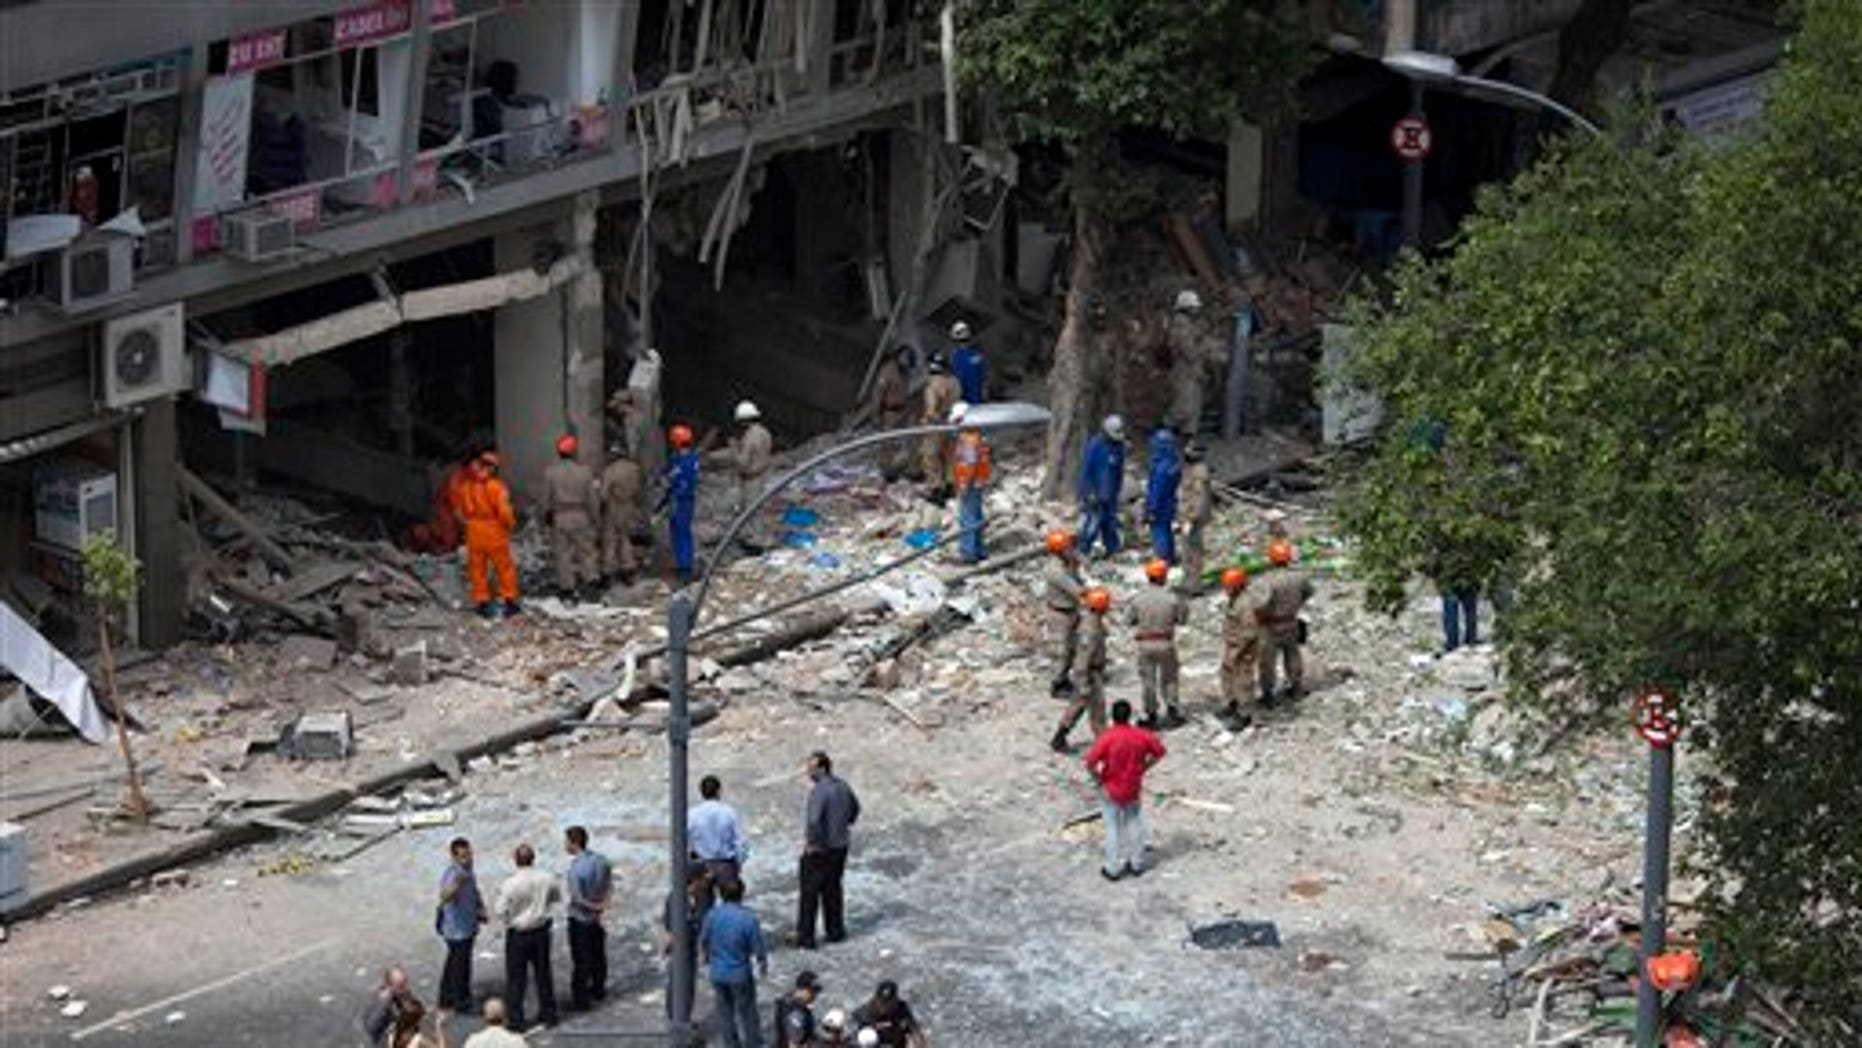 October 13: Emergency workers stand in debris after an explosion that caused heavy damage to a restaurant in Rio de Janeiro, Brazil.